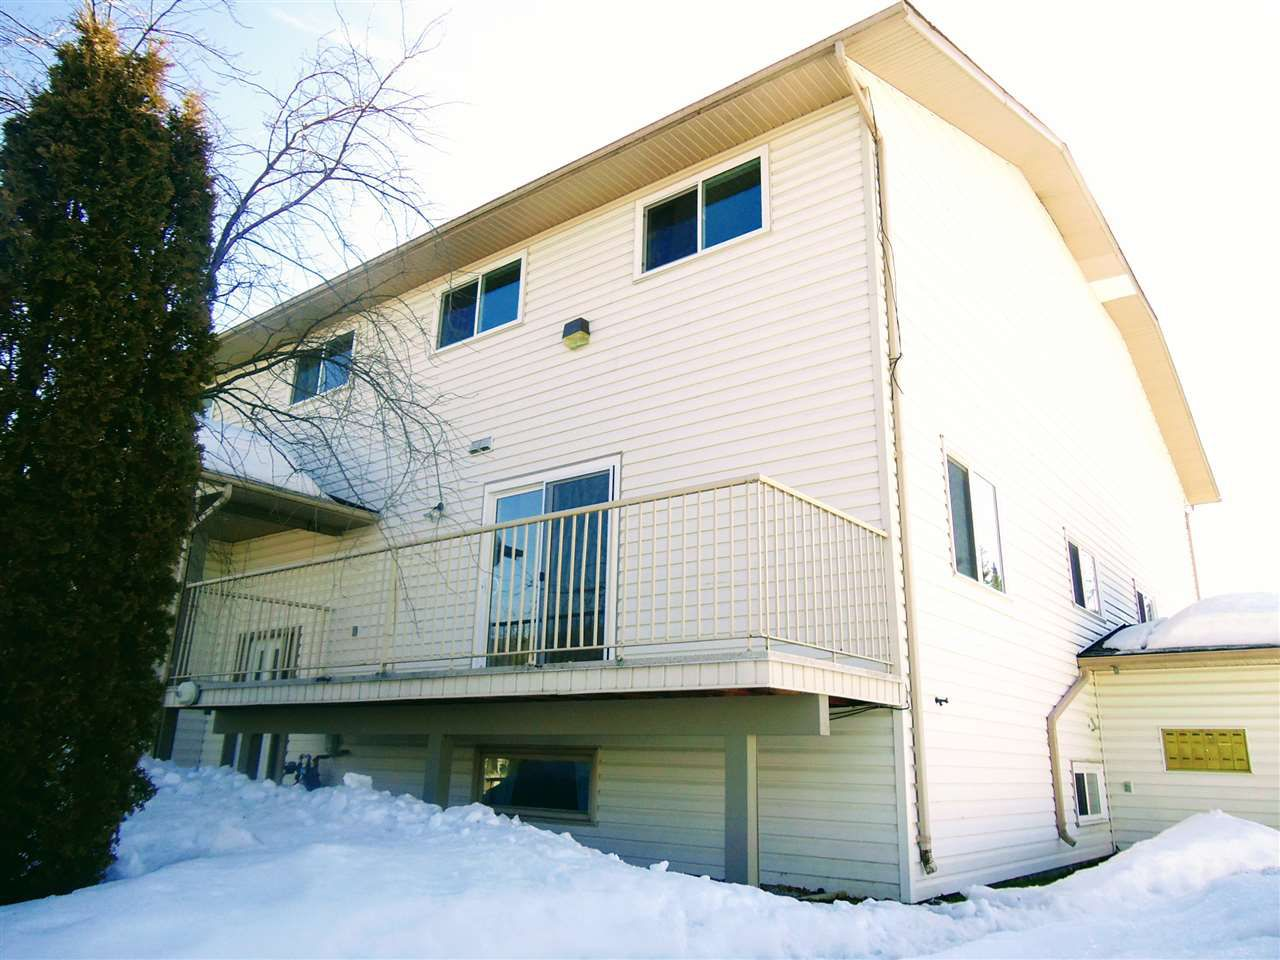 Main Photo: 130 4045 22ND Avenue in Prince George: Pinewood Townhouse for sale (PG City West (Zone 71))  : MLS®# R2352301